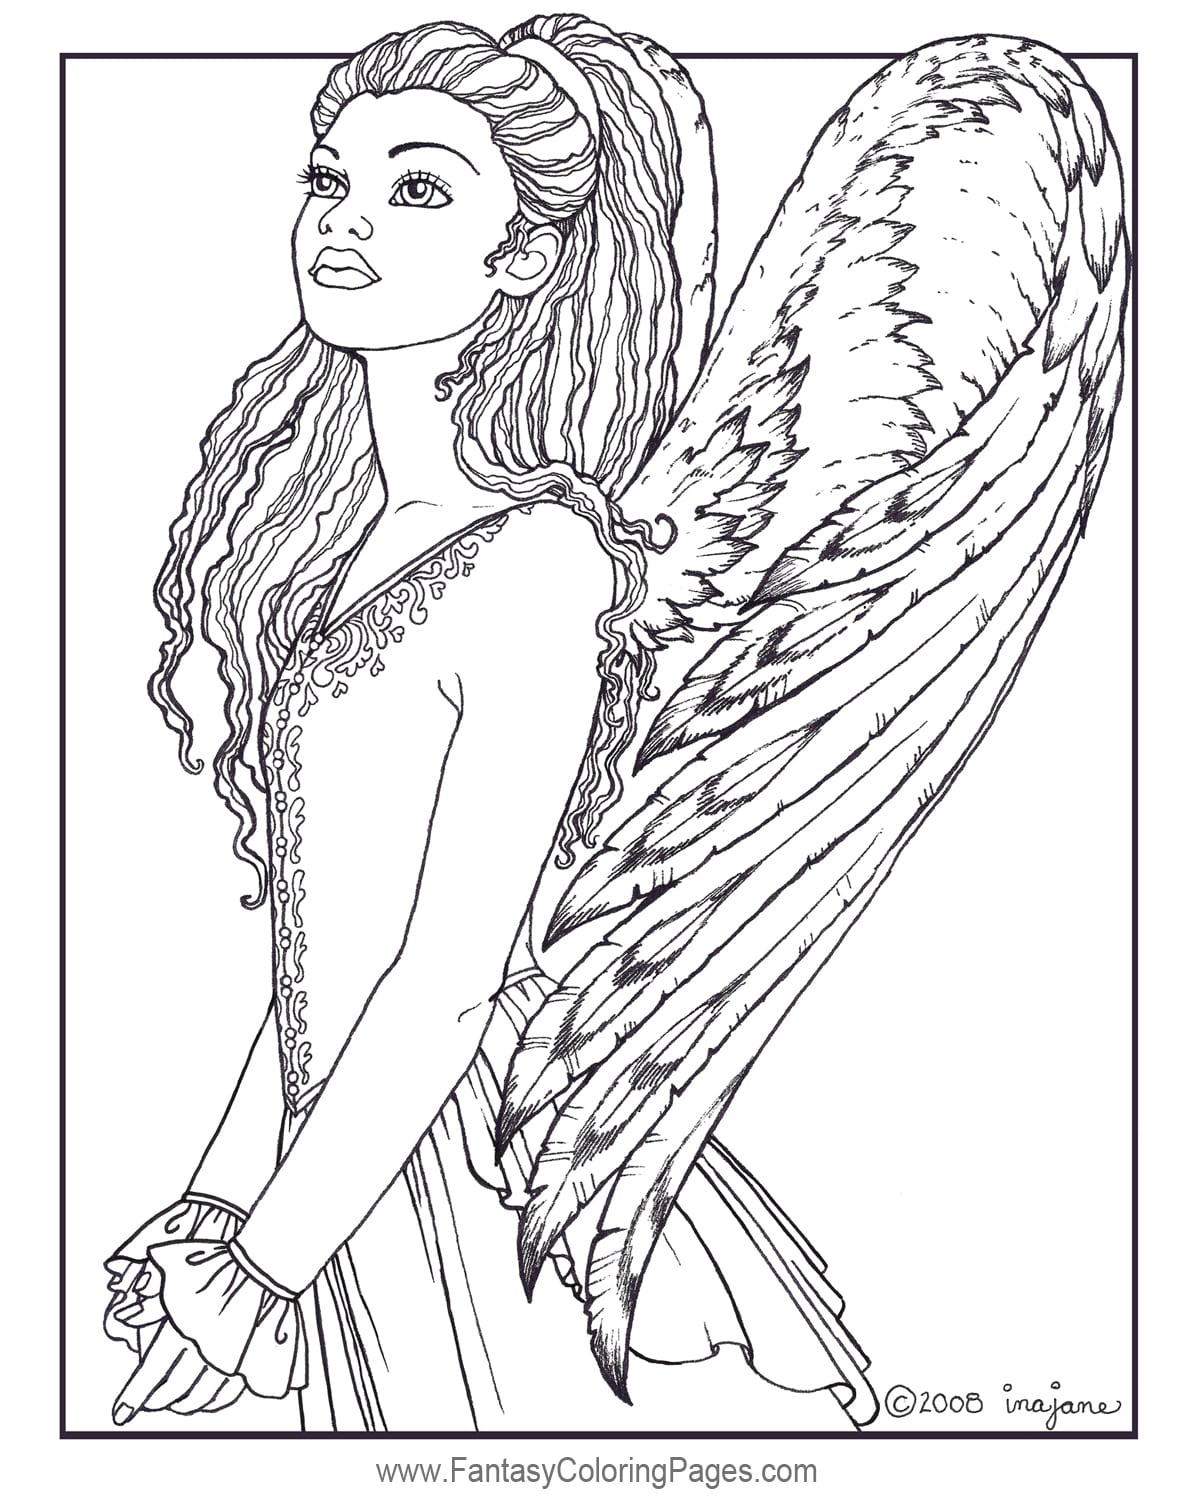 2 Angel Coloring Pages, Free Printable Angel Coloring Pages For